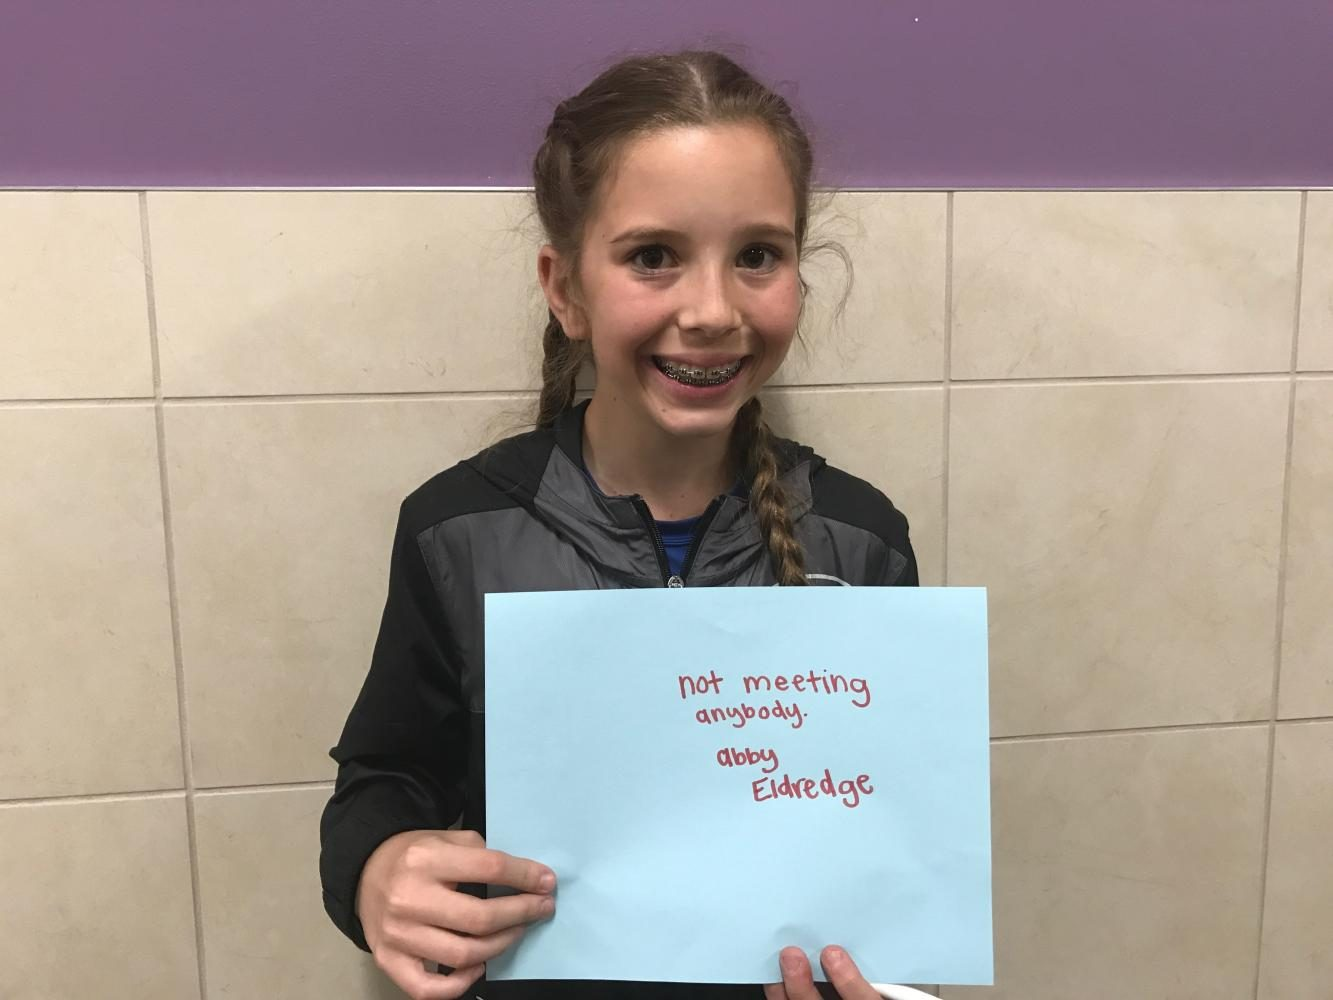 Abby Eldredge holding her fear going into middle school, Not meeting anybody.